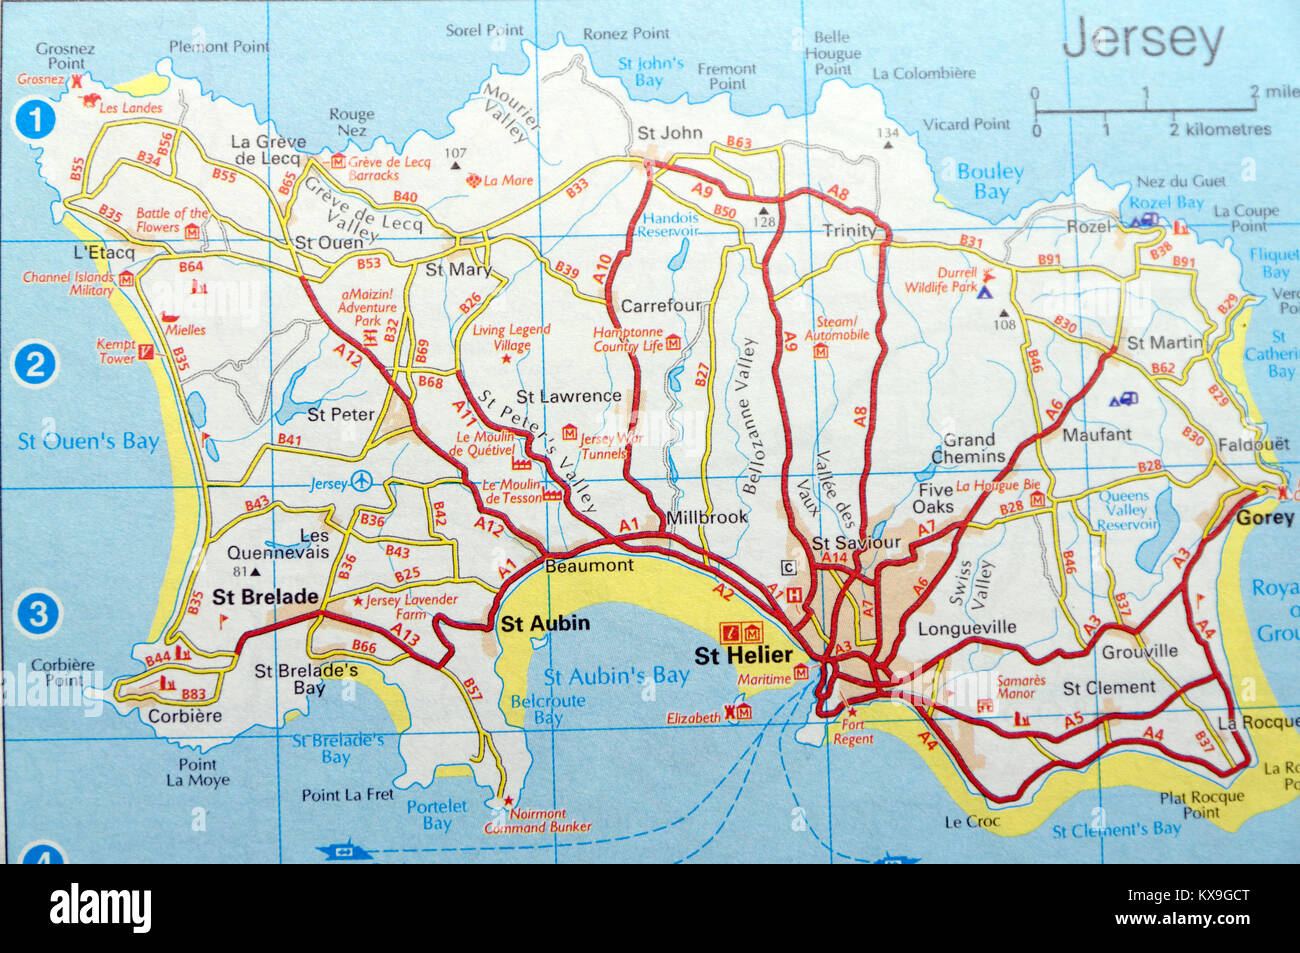 road map of jersey